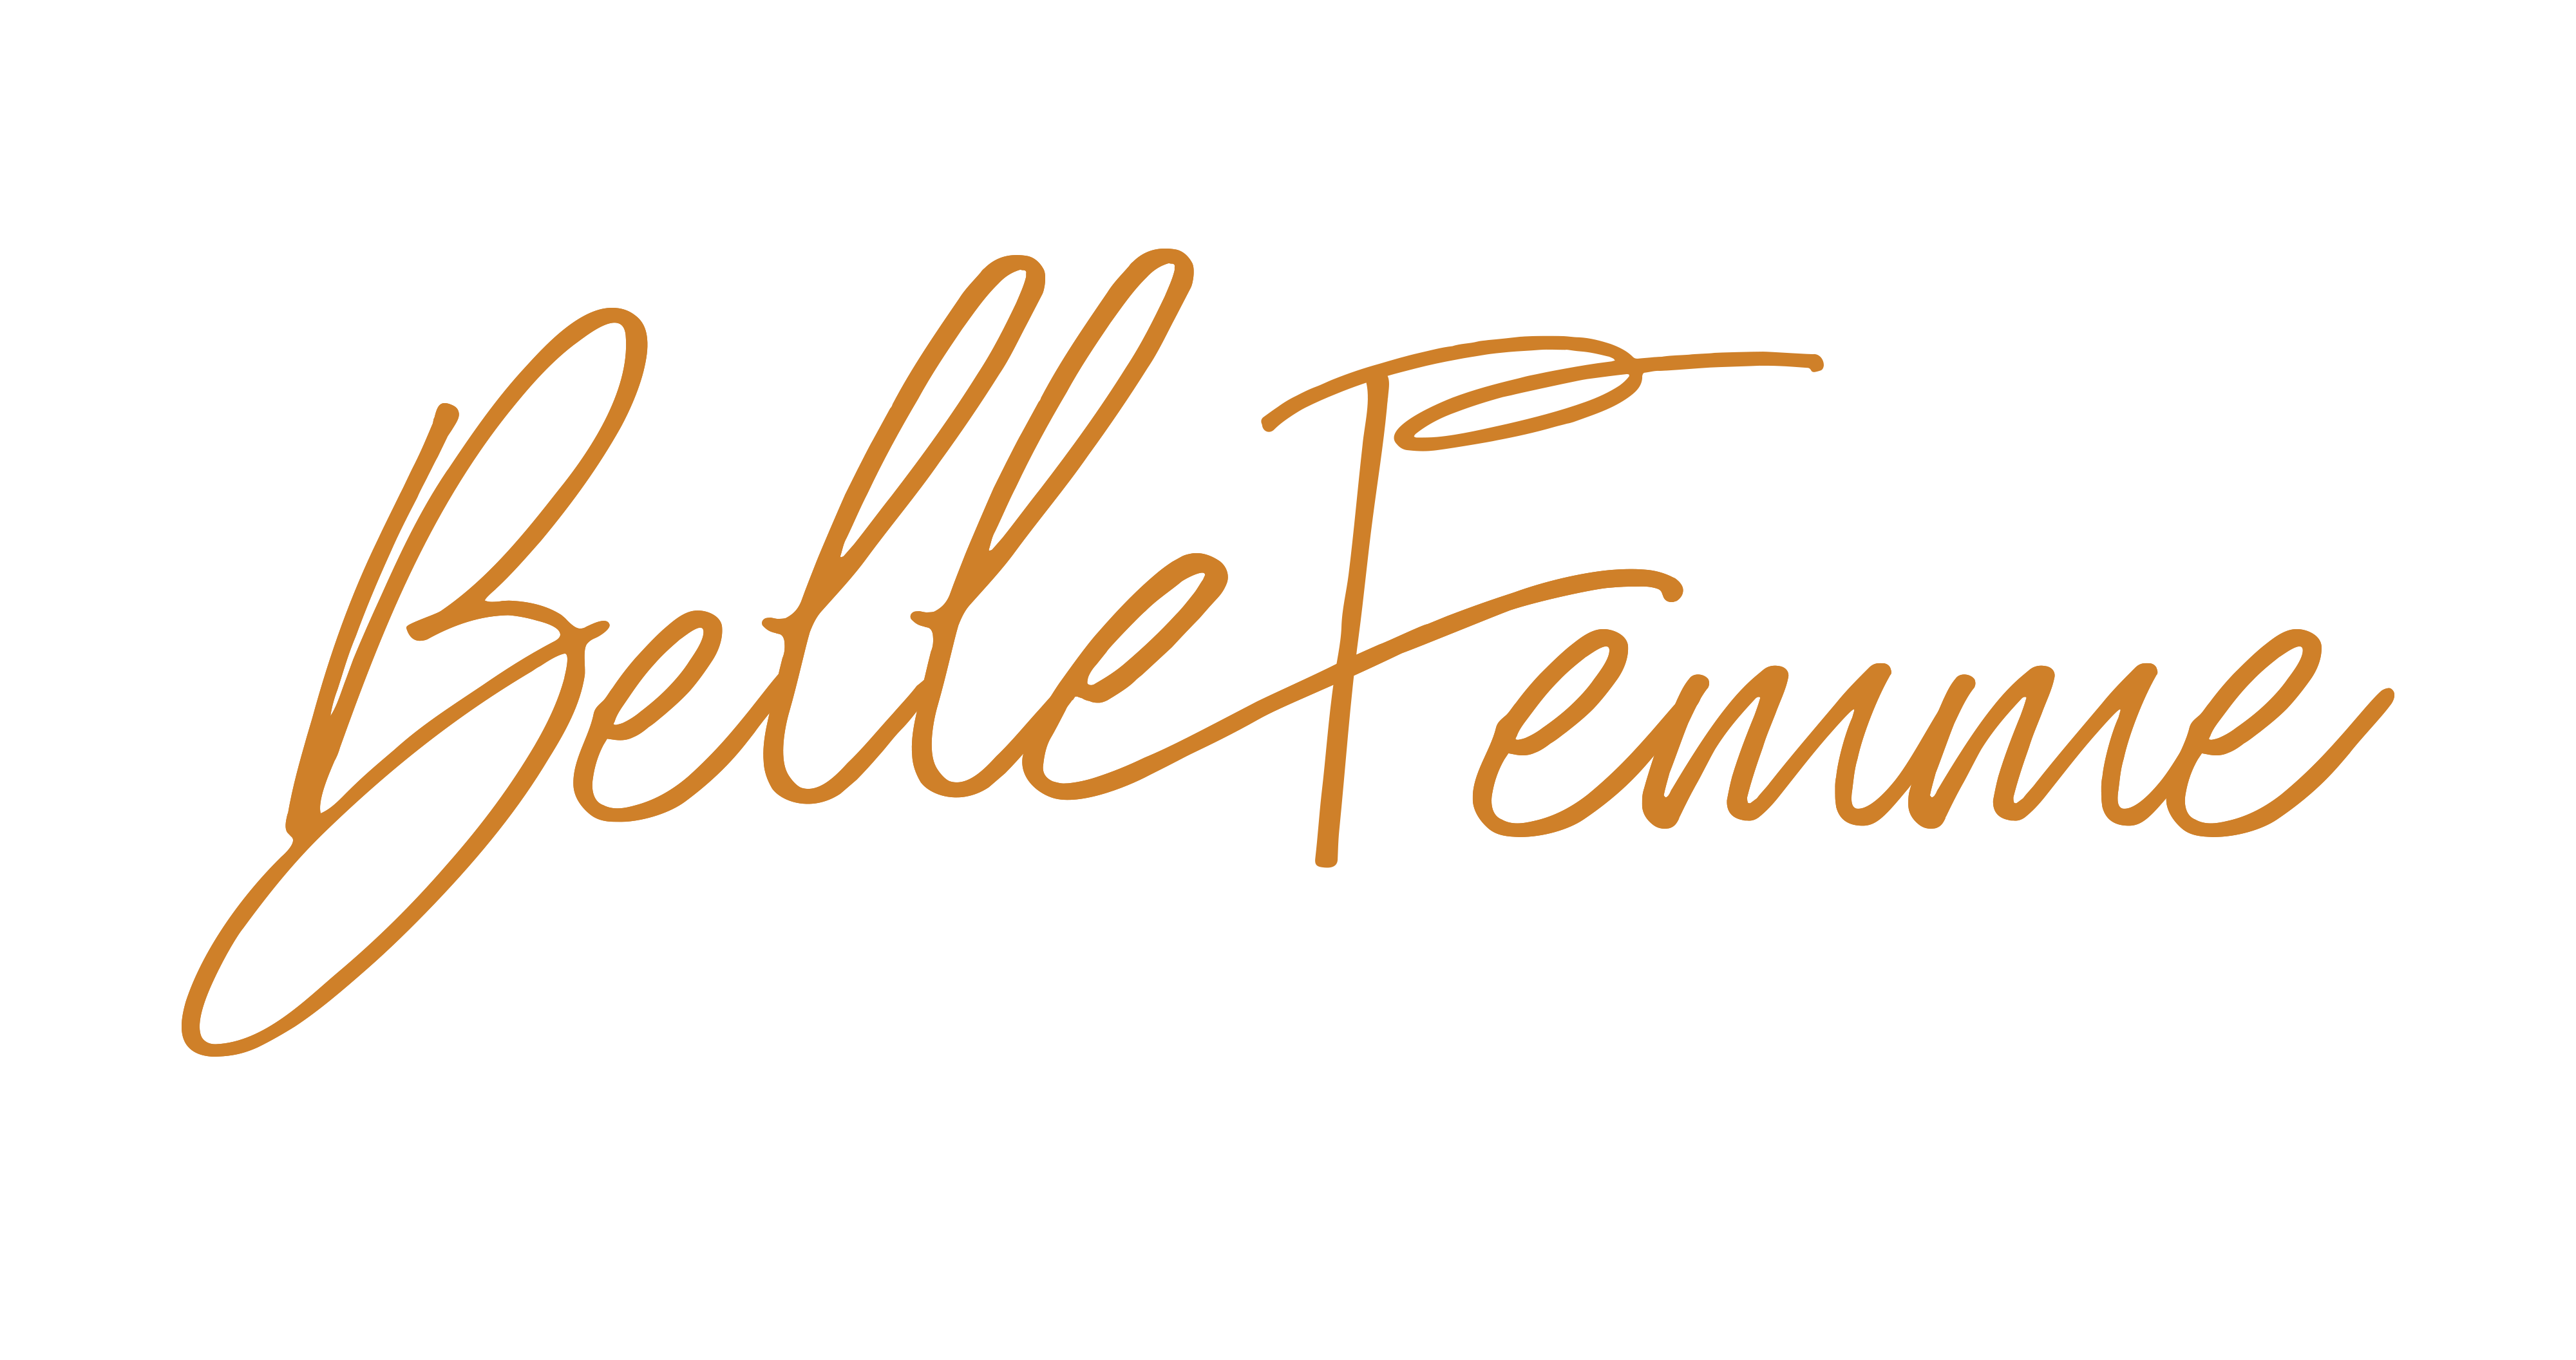 Belle Femme Couture